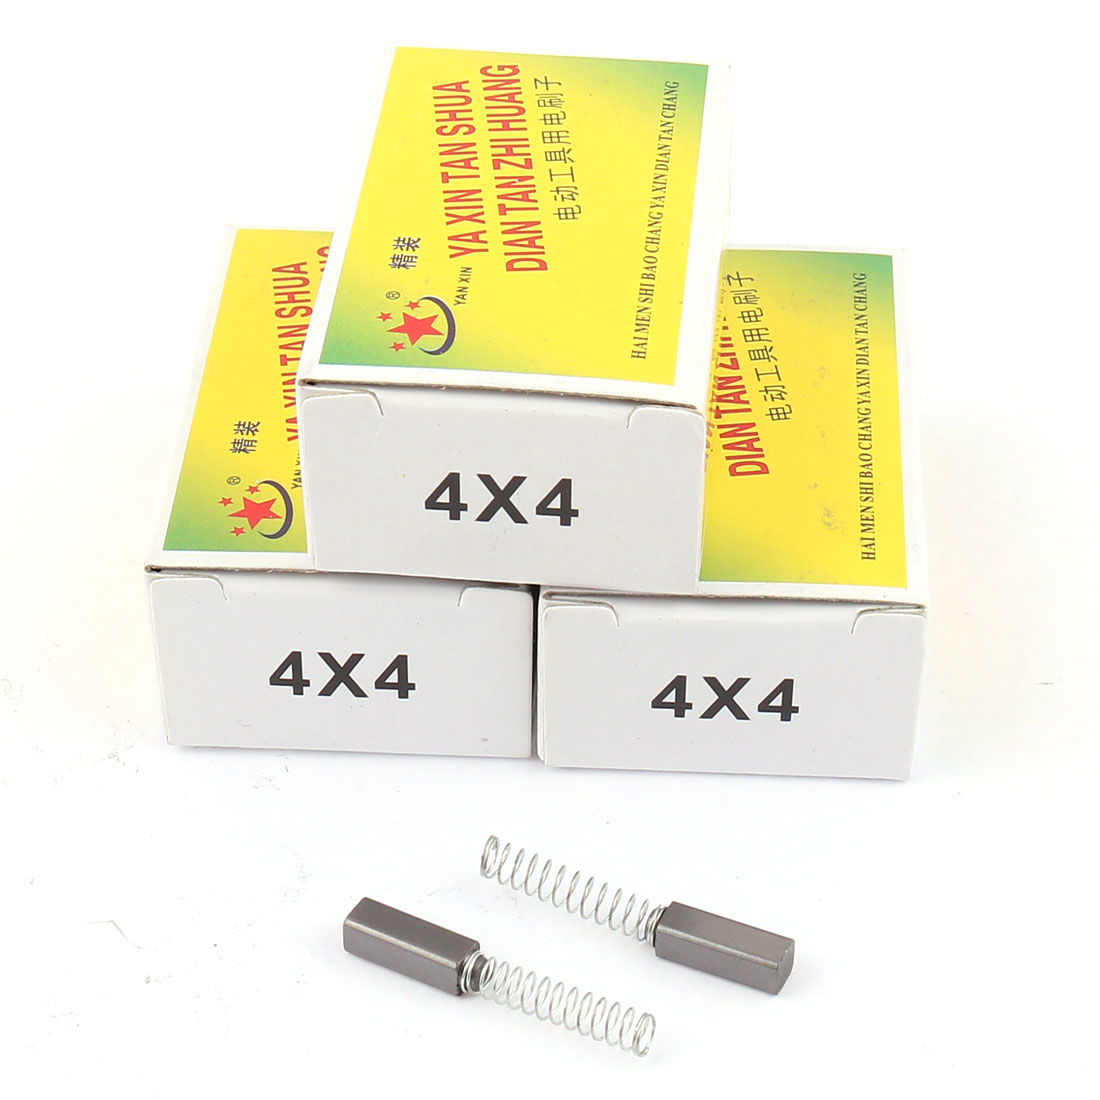 4 Pairs Replacement Carbon Brushes 9mm x 4mm x 4mm for Generic Electric Motor